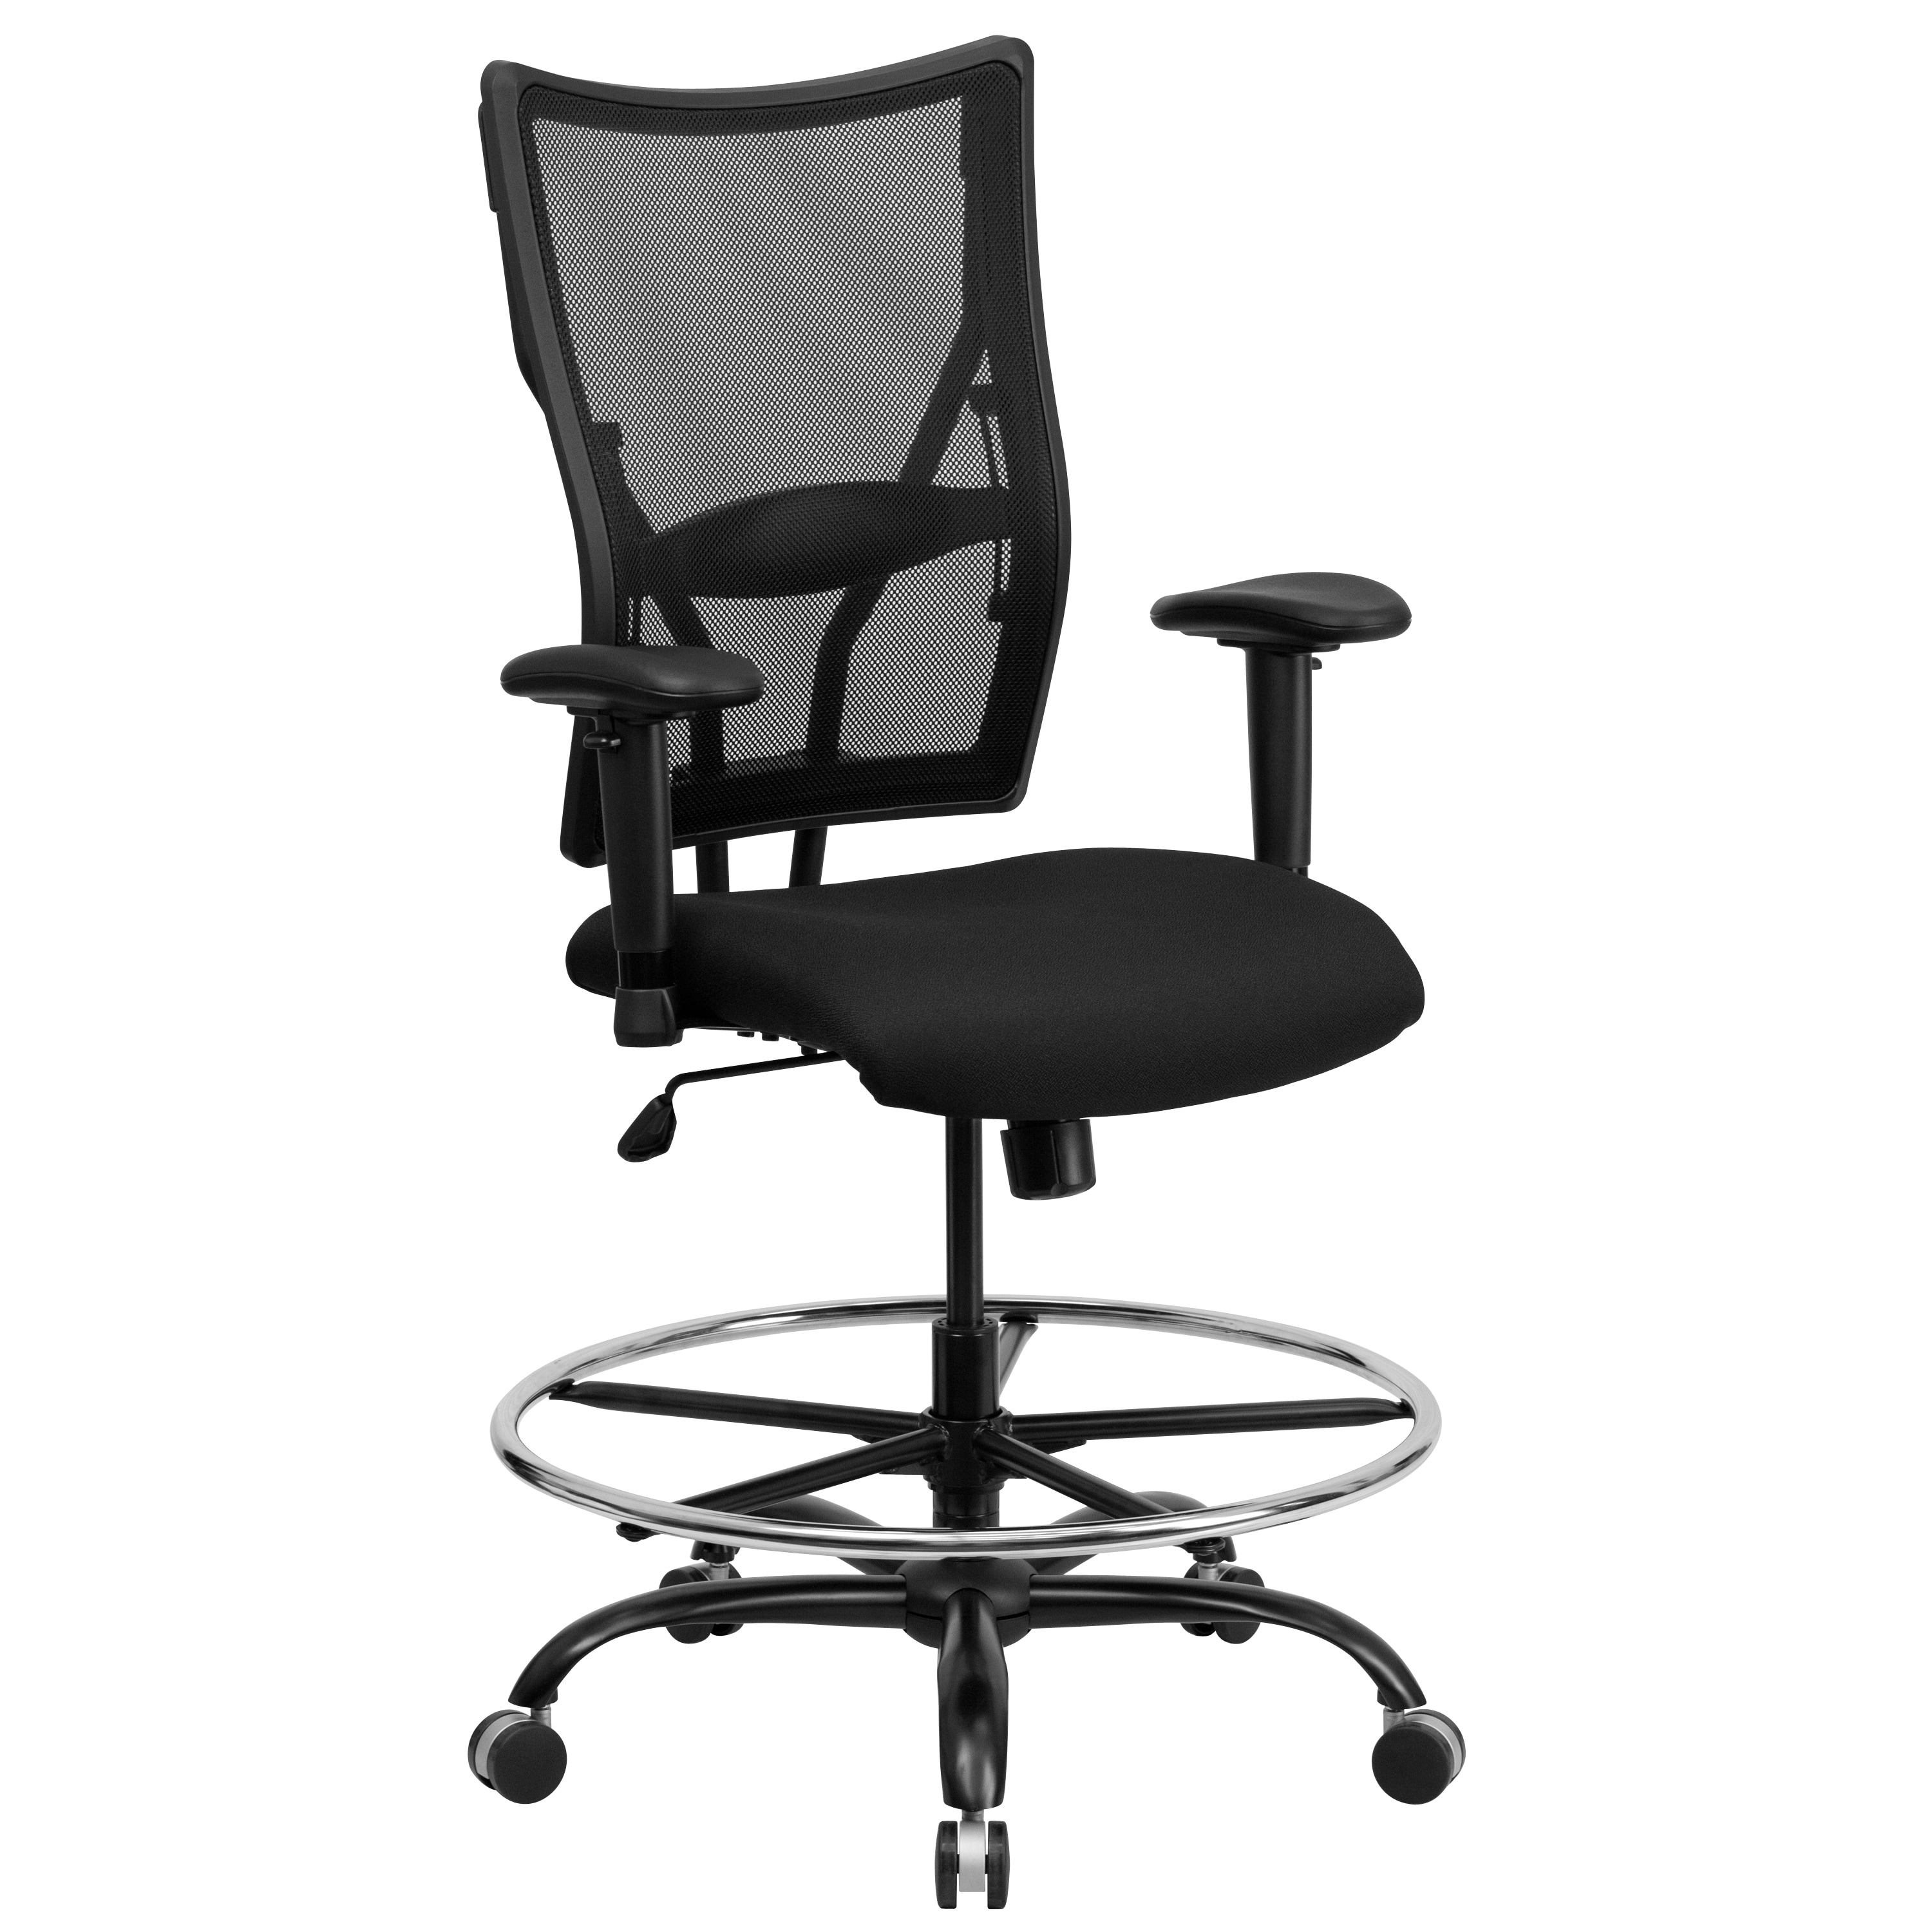 Admirable Portam Big And Tall Black Mesh Office Chair With Footrest Ring And Adjustable Arms Home Interior And Landscaping Transignezvosmurscom